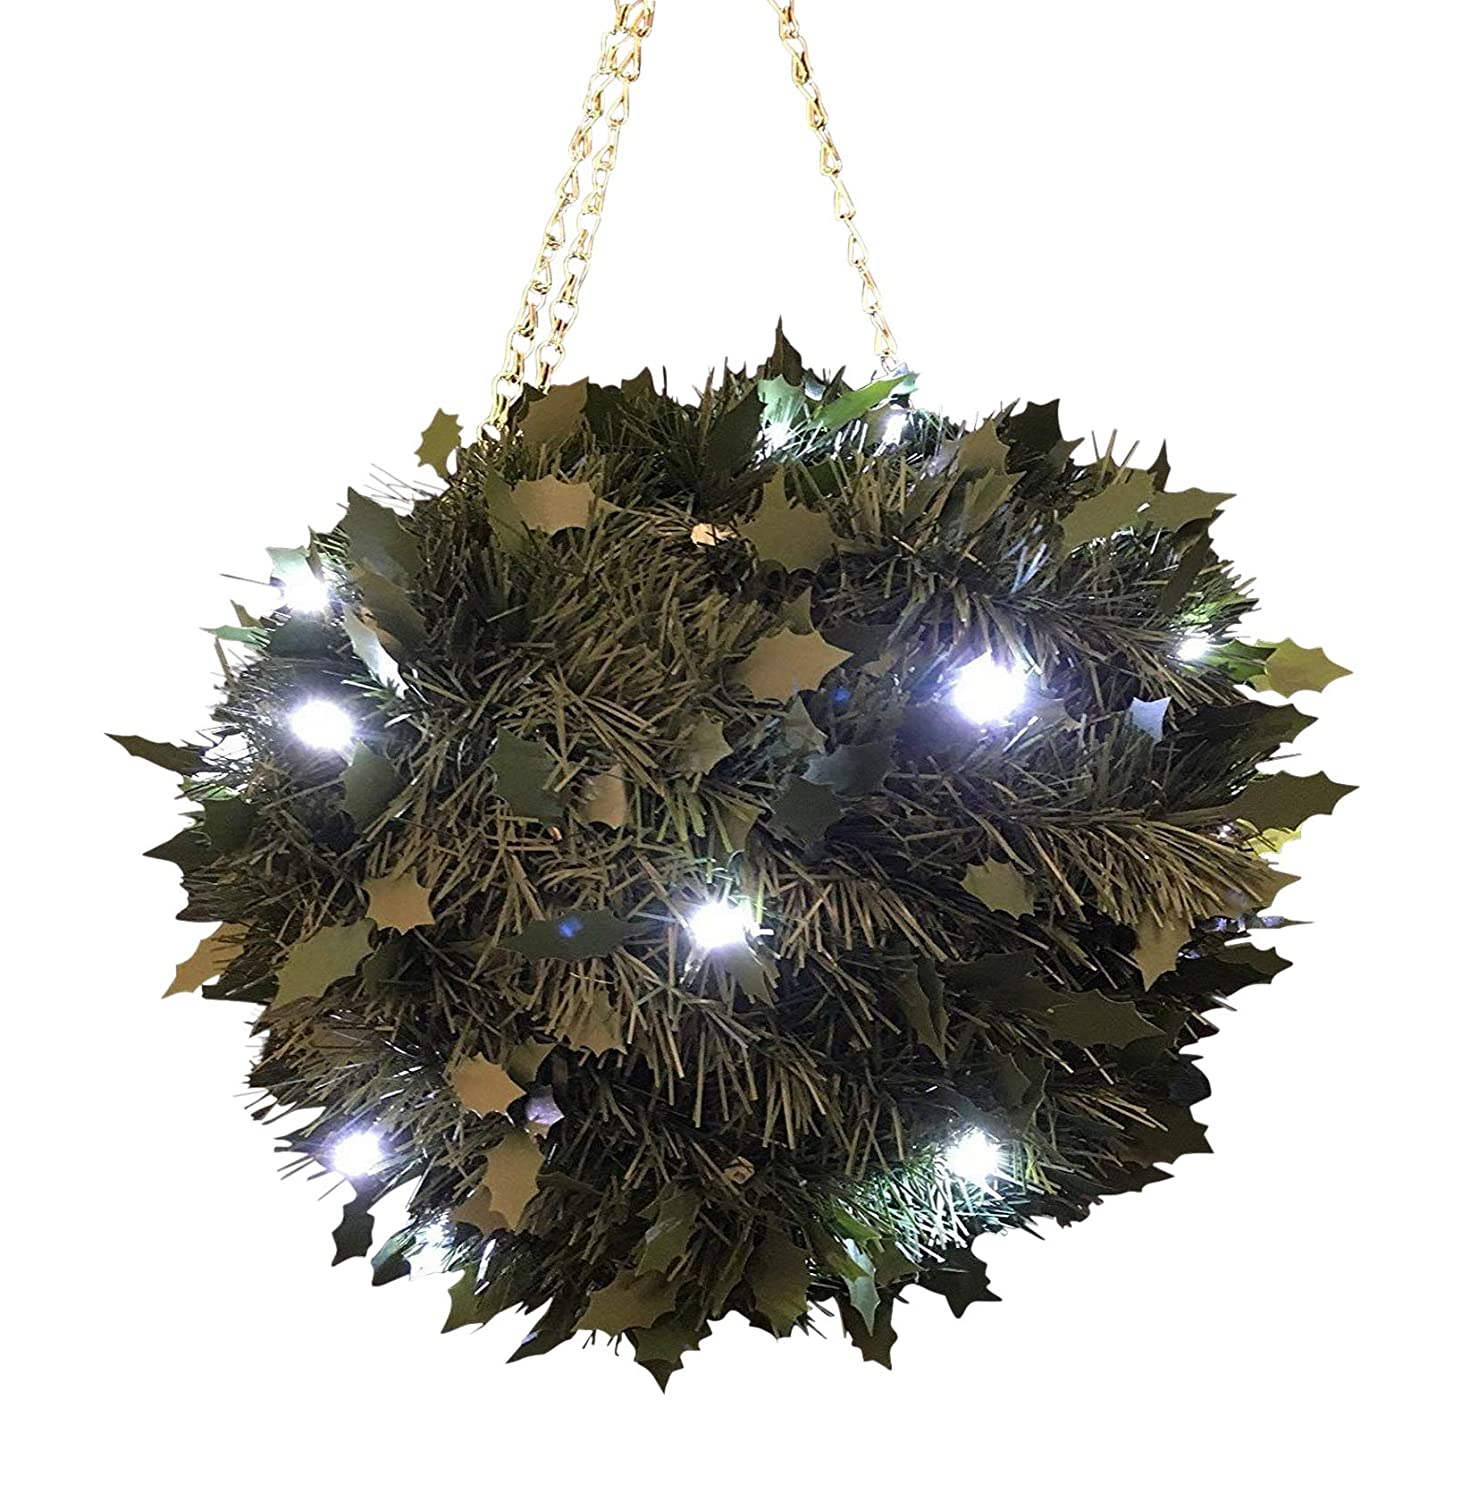 Large Artificial Topiary Ball - Battery Operated LED Lit Green Hanging Holly Topiary Ball with Lights HomeAndGarden.UK